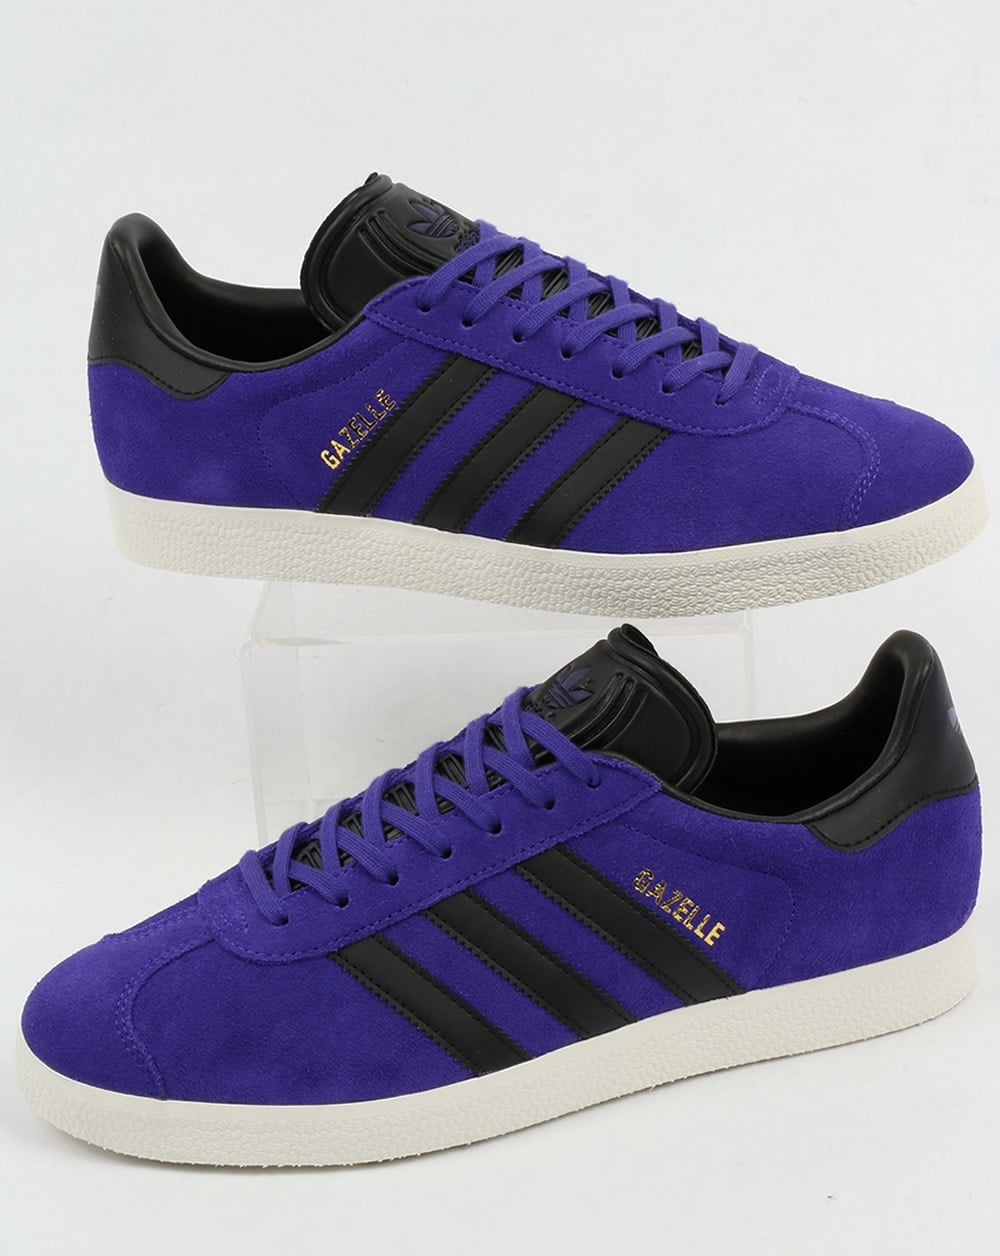 b035c627 Adidas Gazelle Trainers Energy Ink/Black,originals,shoes,mens,sneakers